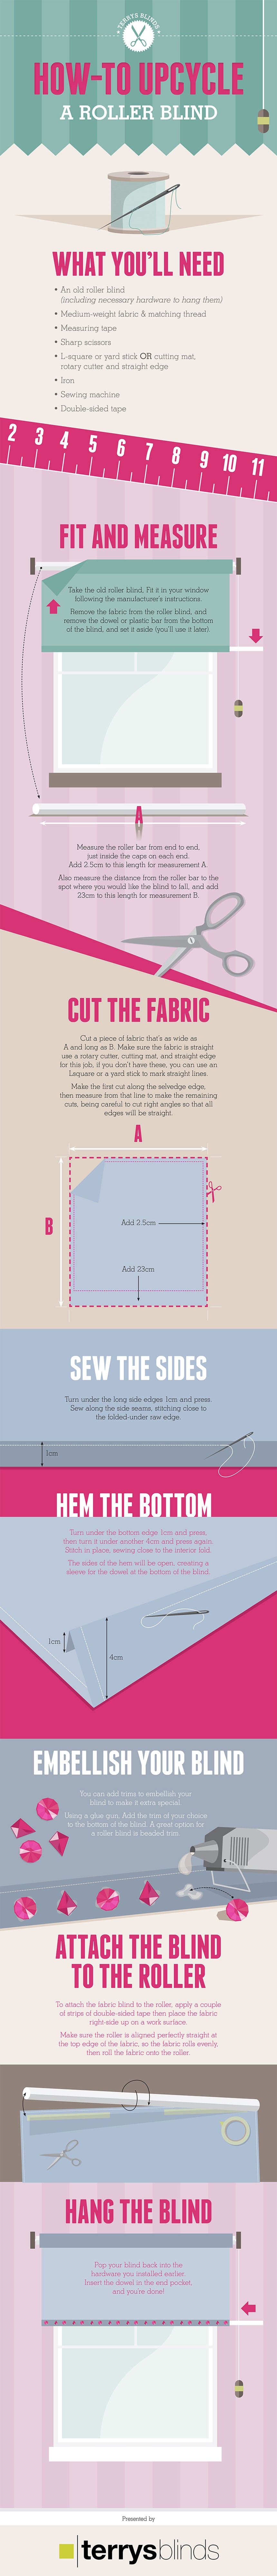 How To Upcycle A Roller Blind Infographic